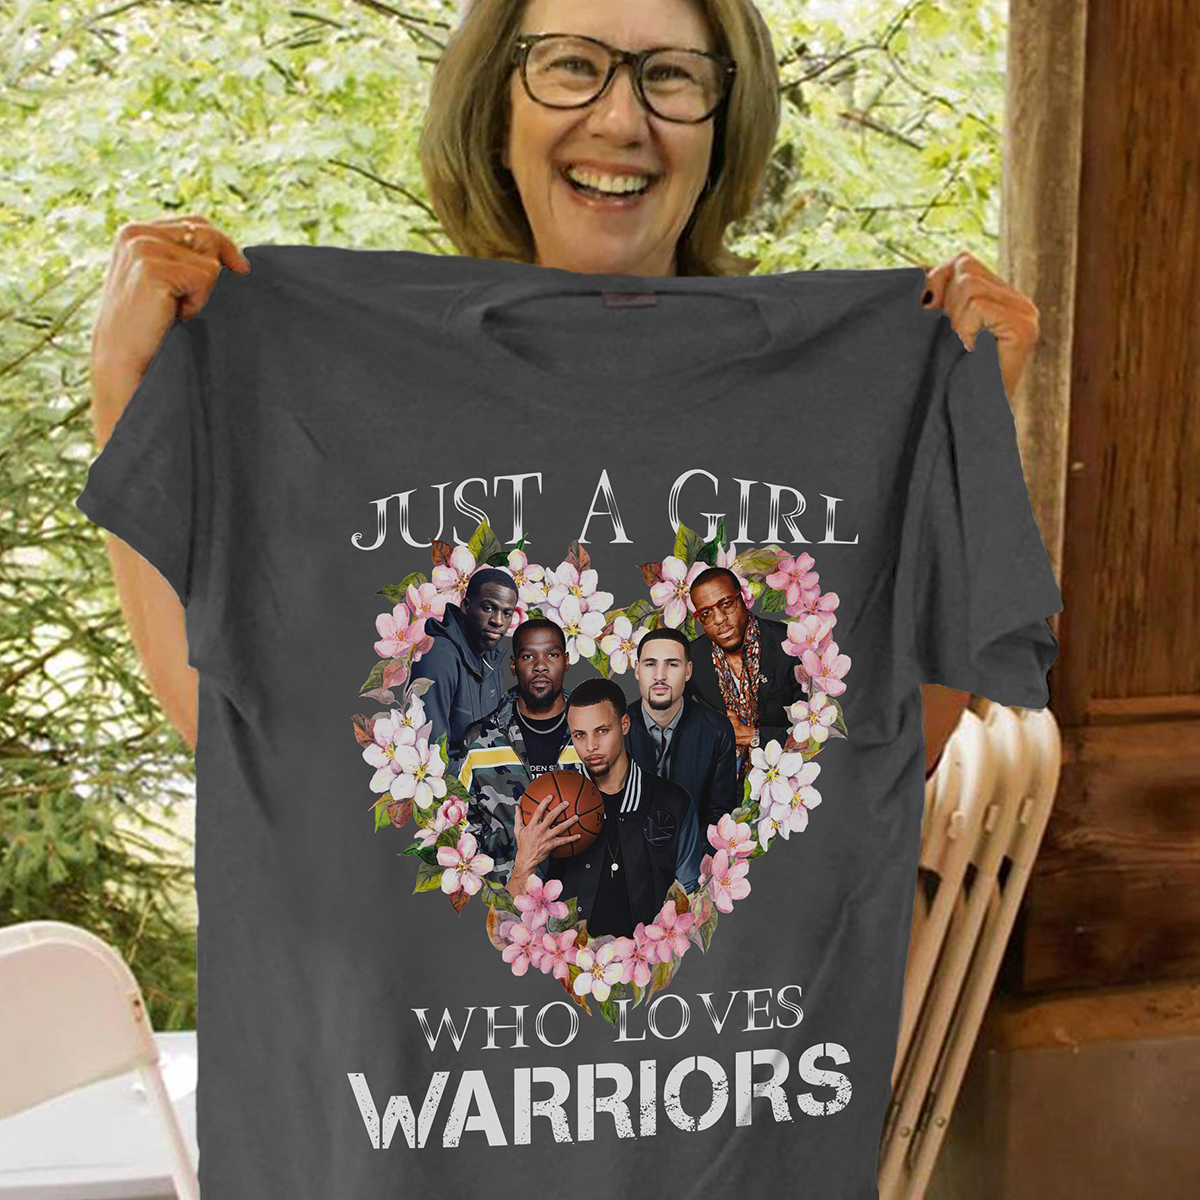 Just a girl who loves warriors shirt